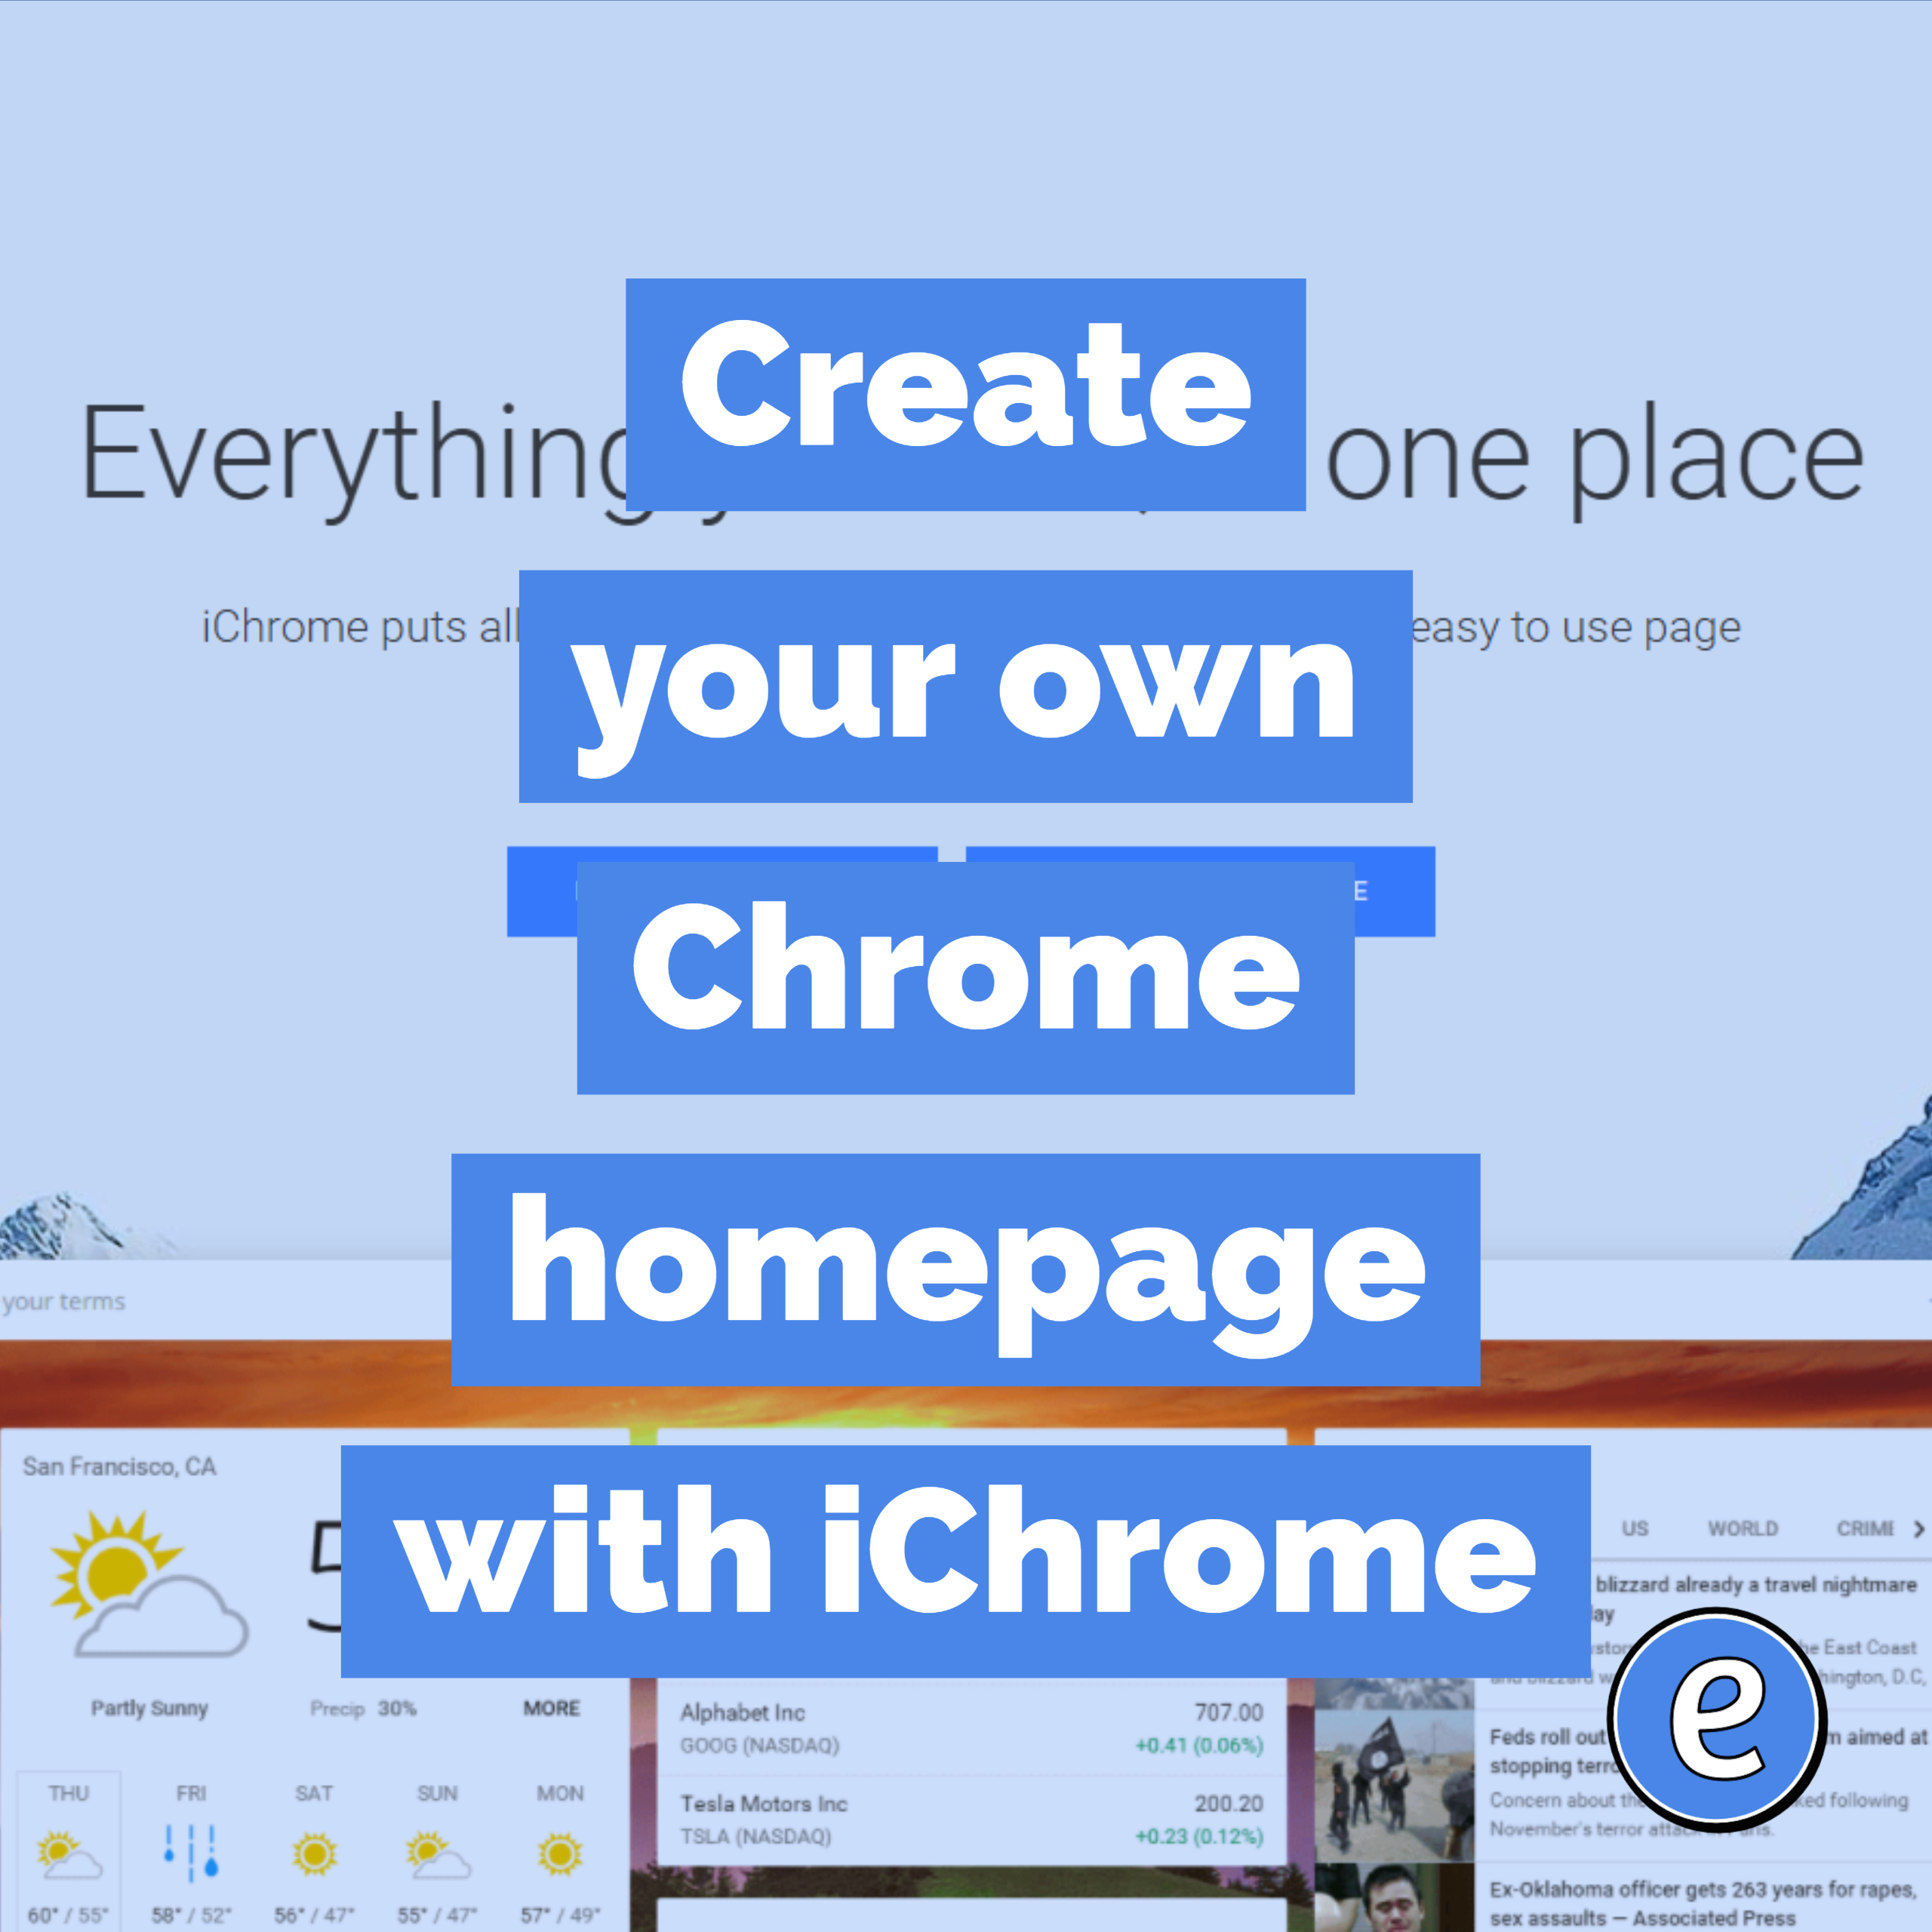 Create your own Chrome homepage with iChrome - #Eduk8me